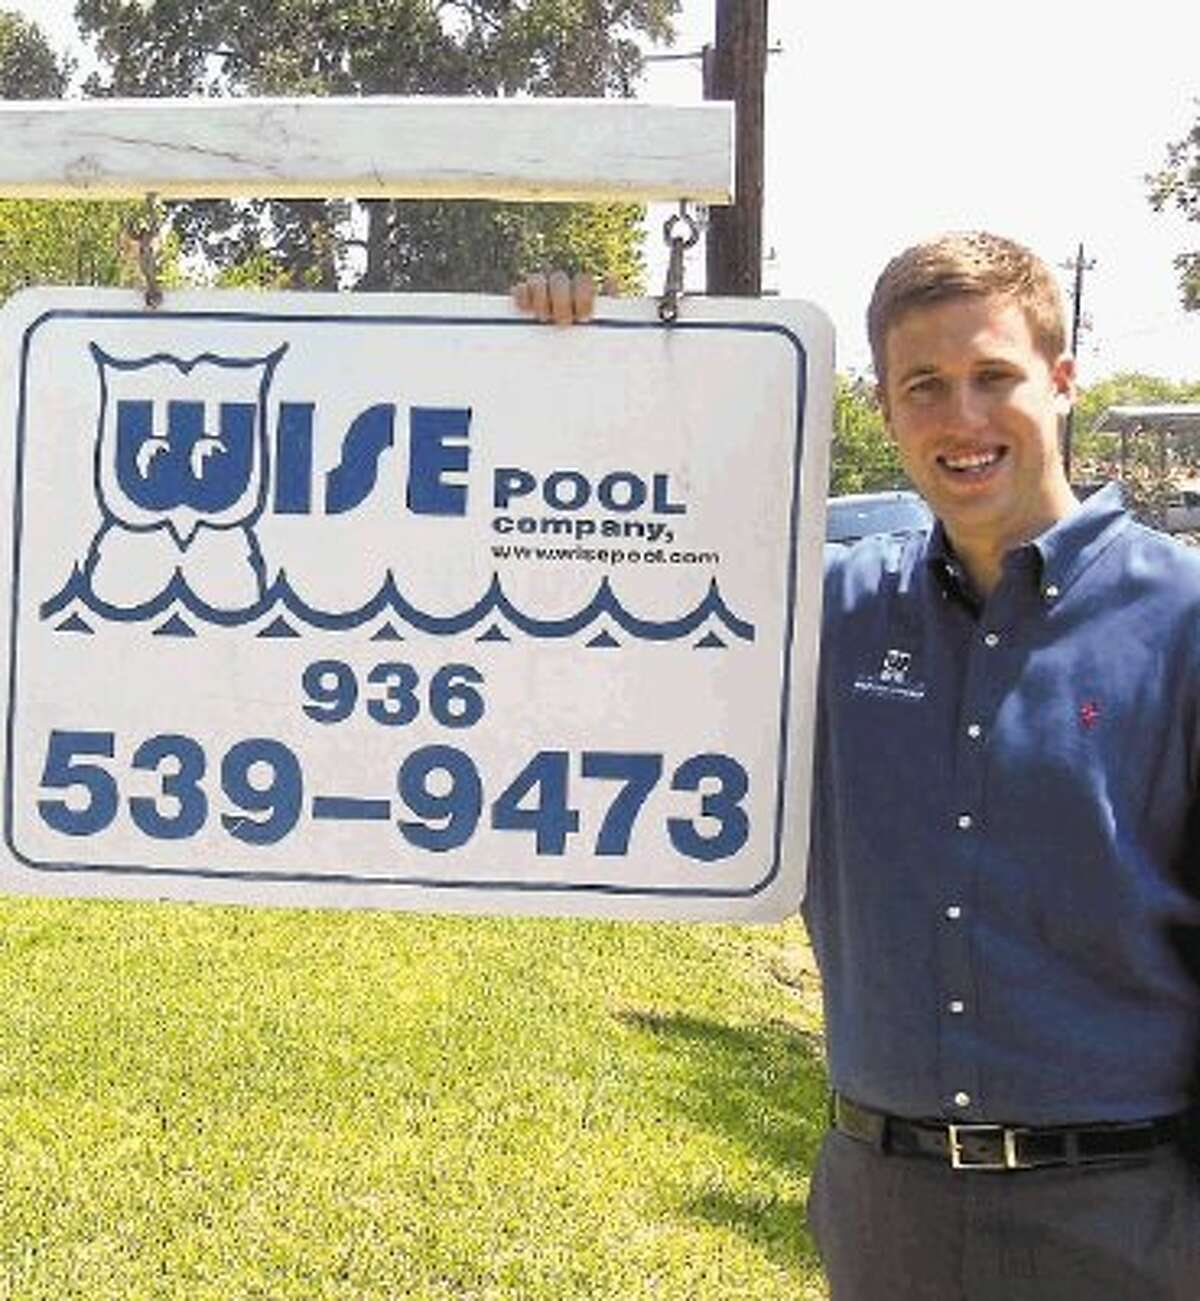 Jonathan Carroll, president of Wise Pool Company, recently was certified by Genesis 3.